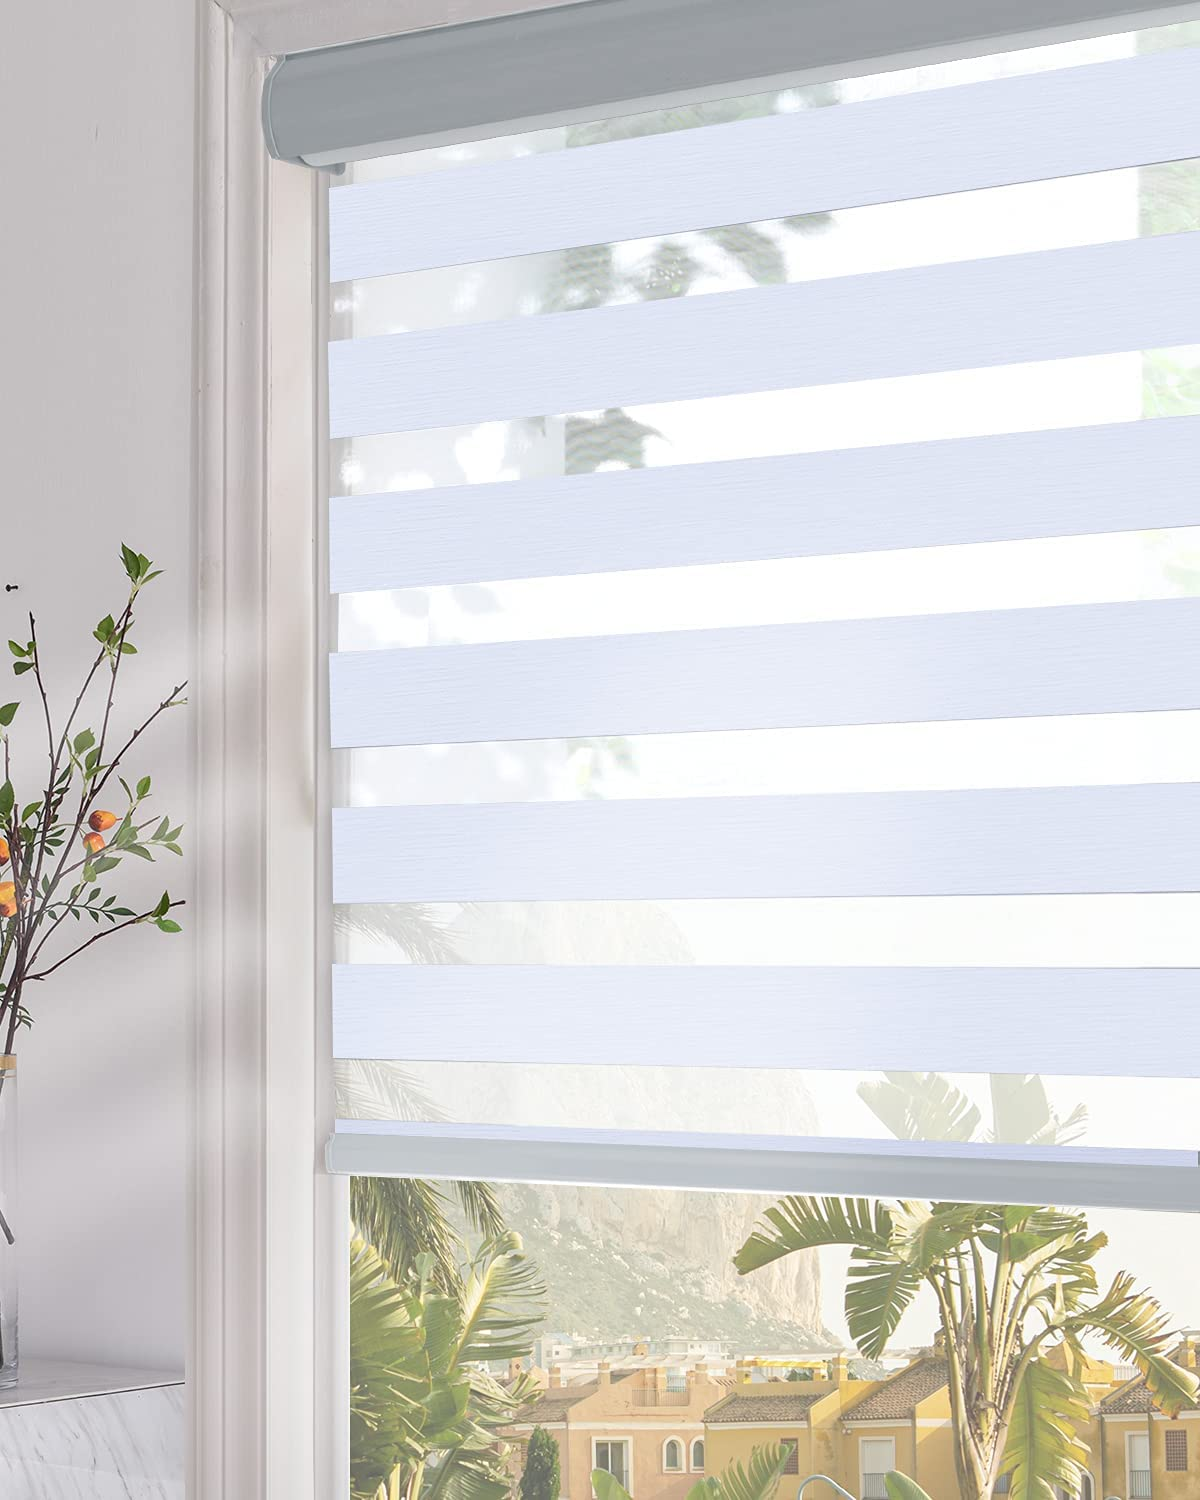 Persilux Blackout Zebra Window Shades Dual Layer Roller Sheer Shades (29